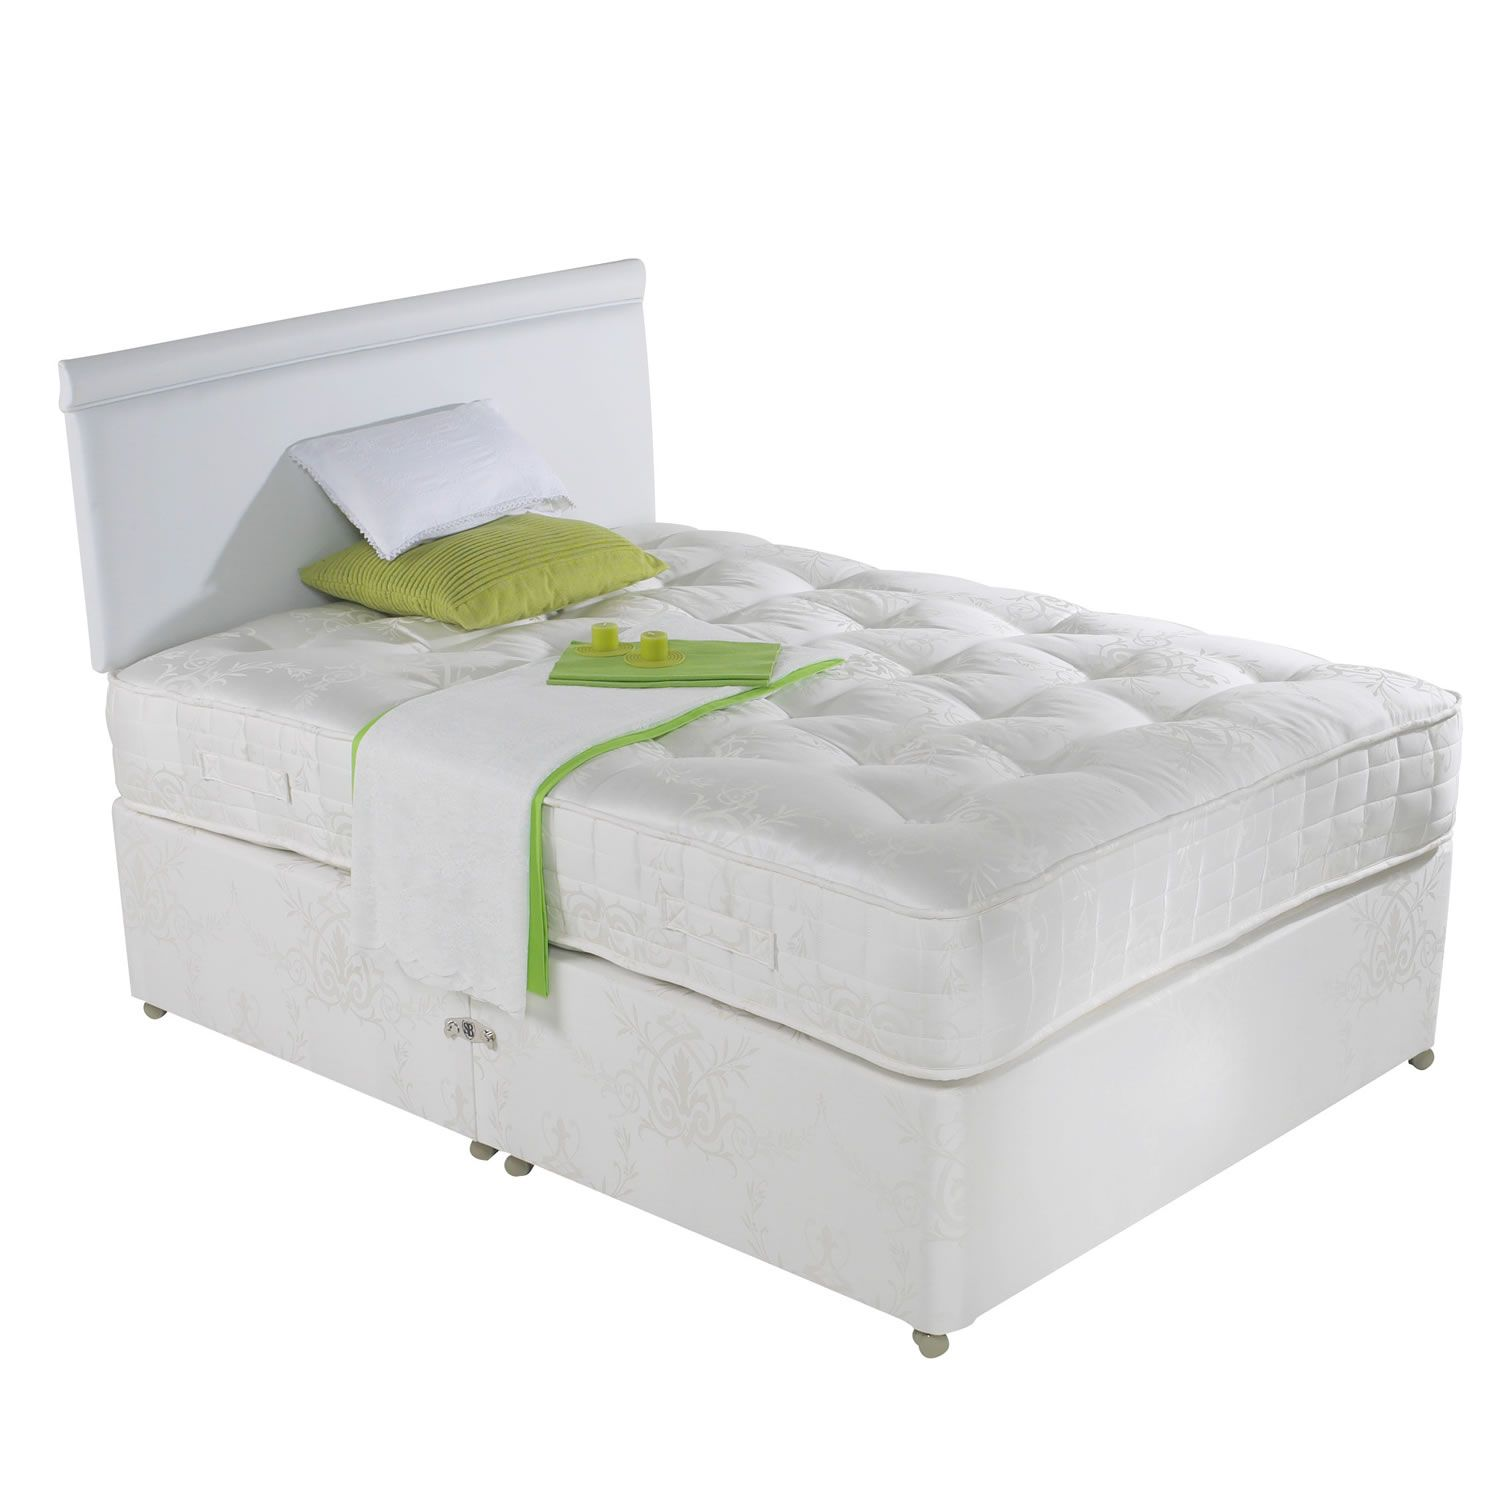 Divan Beds Cheap Latex 2000 Divan Bed Next Day Delivery Latex 2000 Divan Bed From